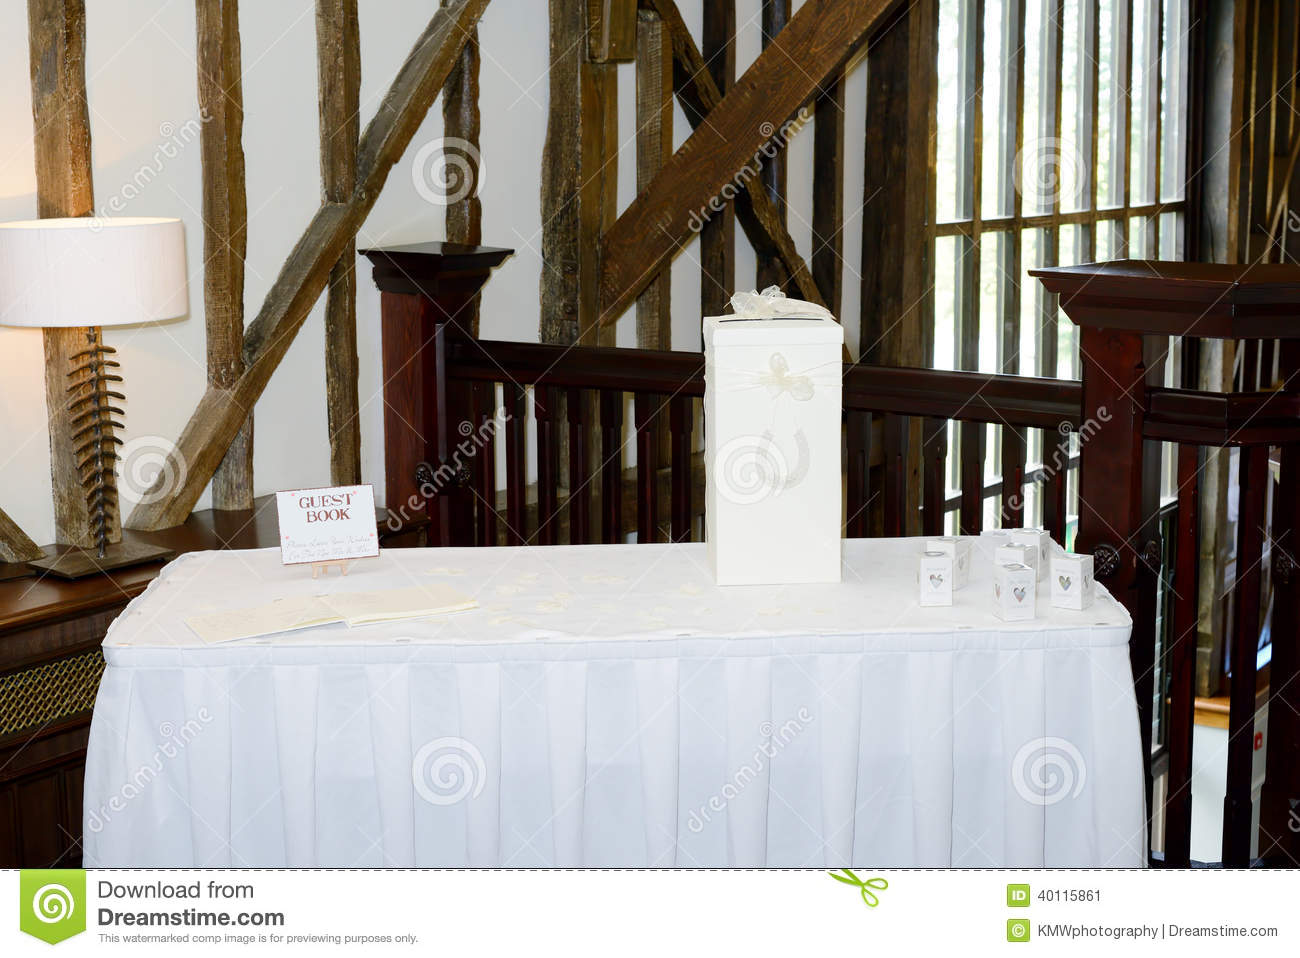 Wedding Reception Gifts For Guests: Wedding Reception Gift Table Stock Photo